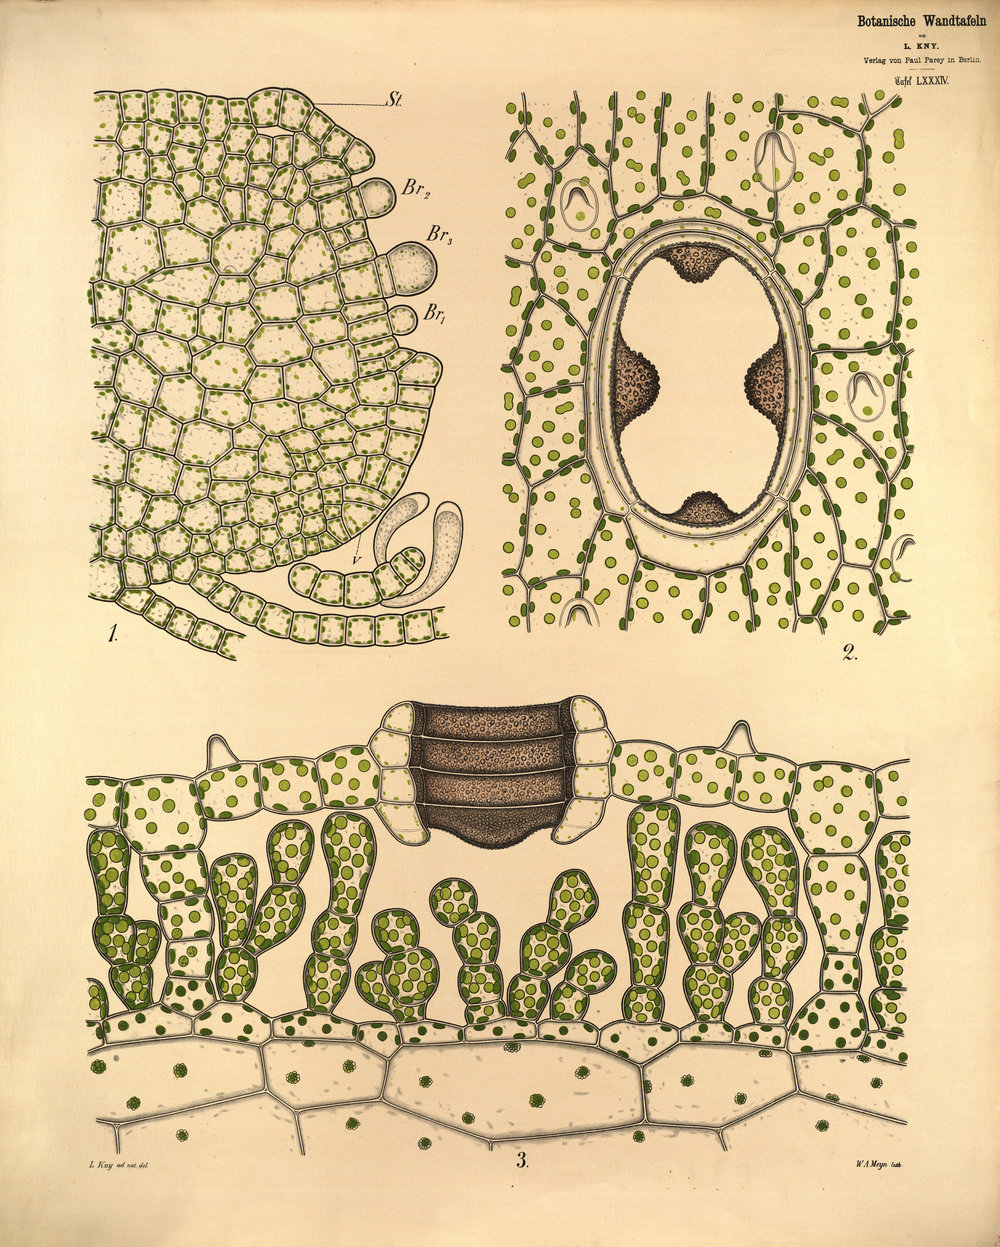 Rare Bites talk #2: Illustrations to micrographs: Visualising patterns in Botany